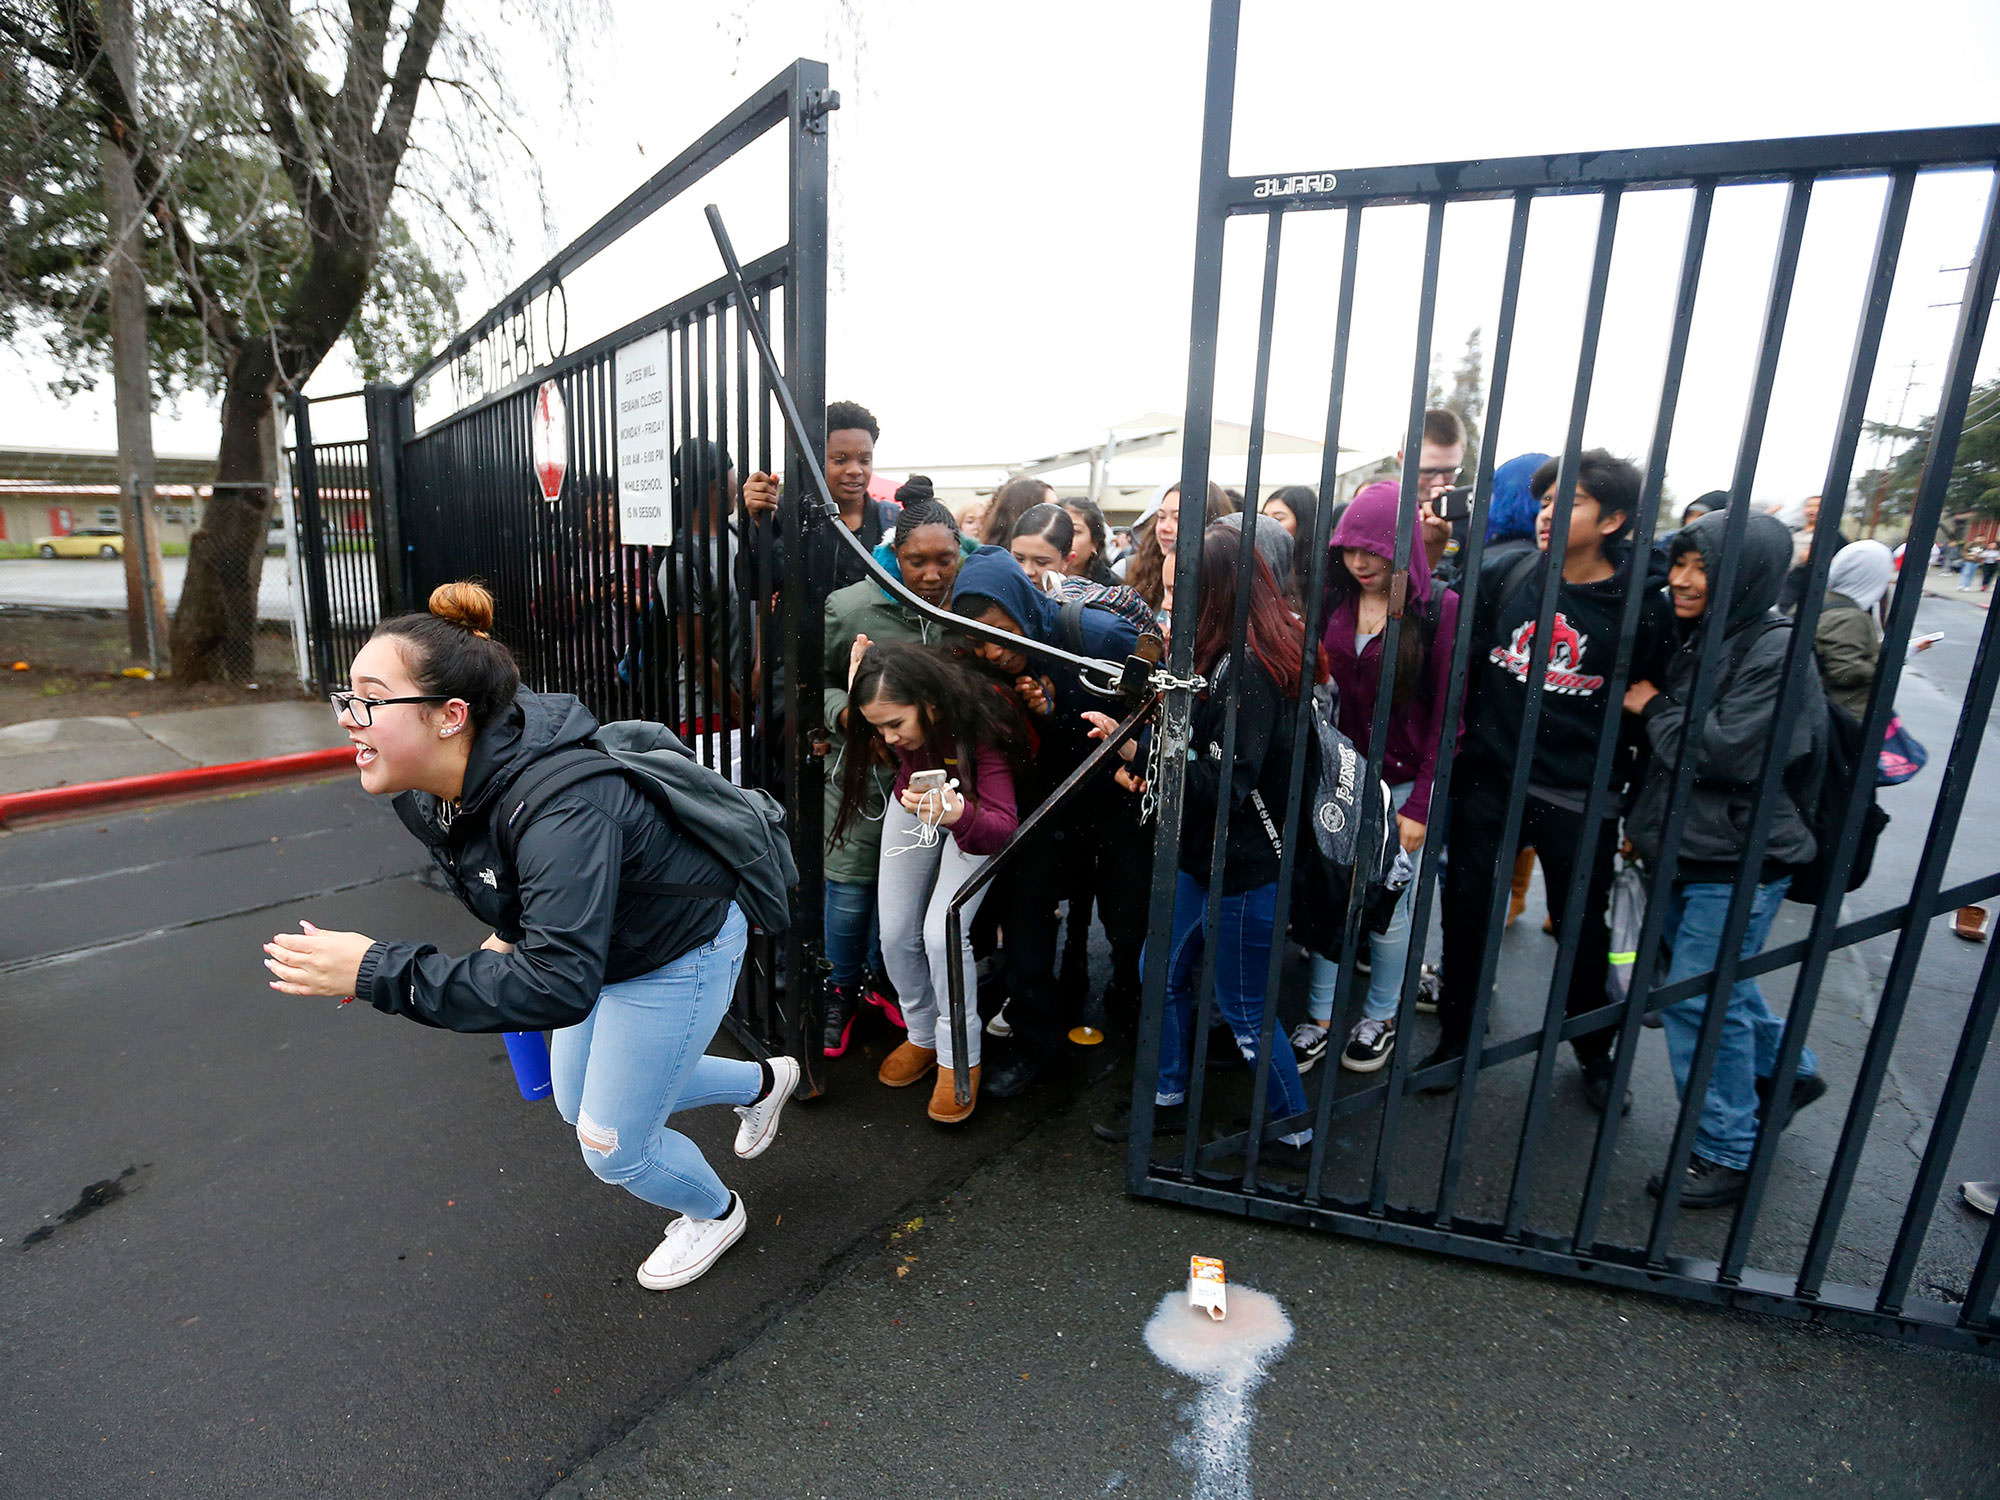 Students at Concord's Mt. Diablo High break through gate in gun protest.